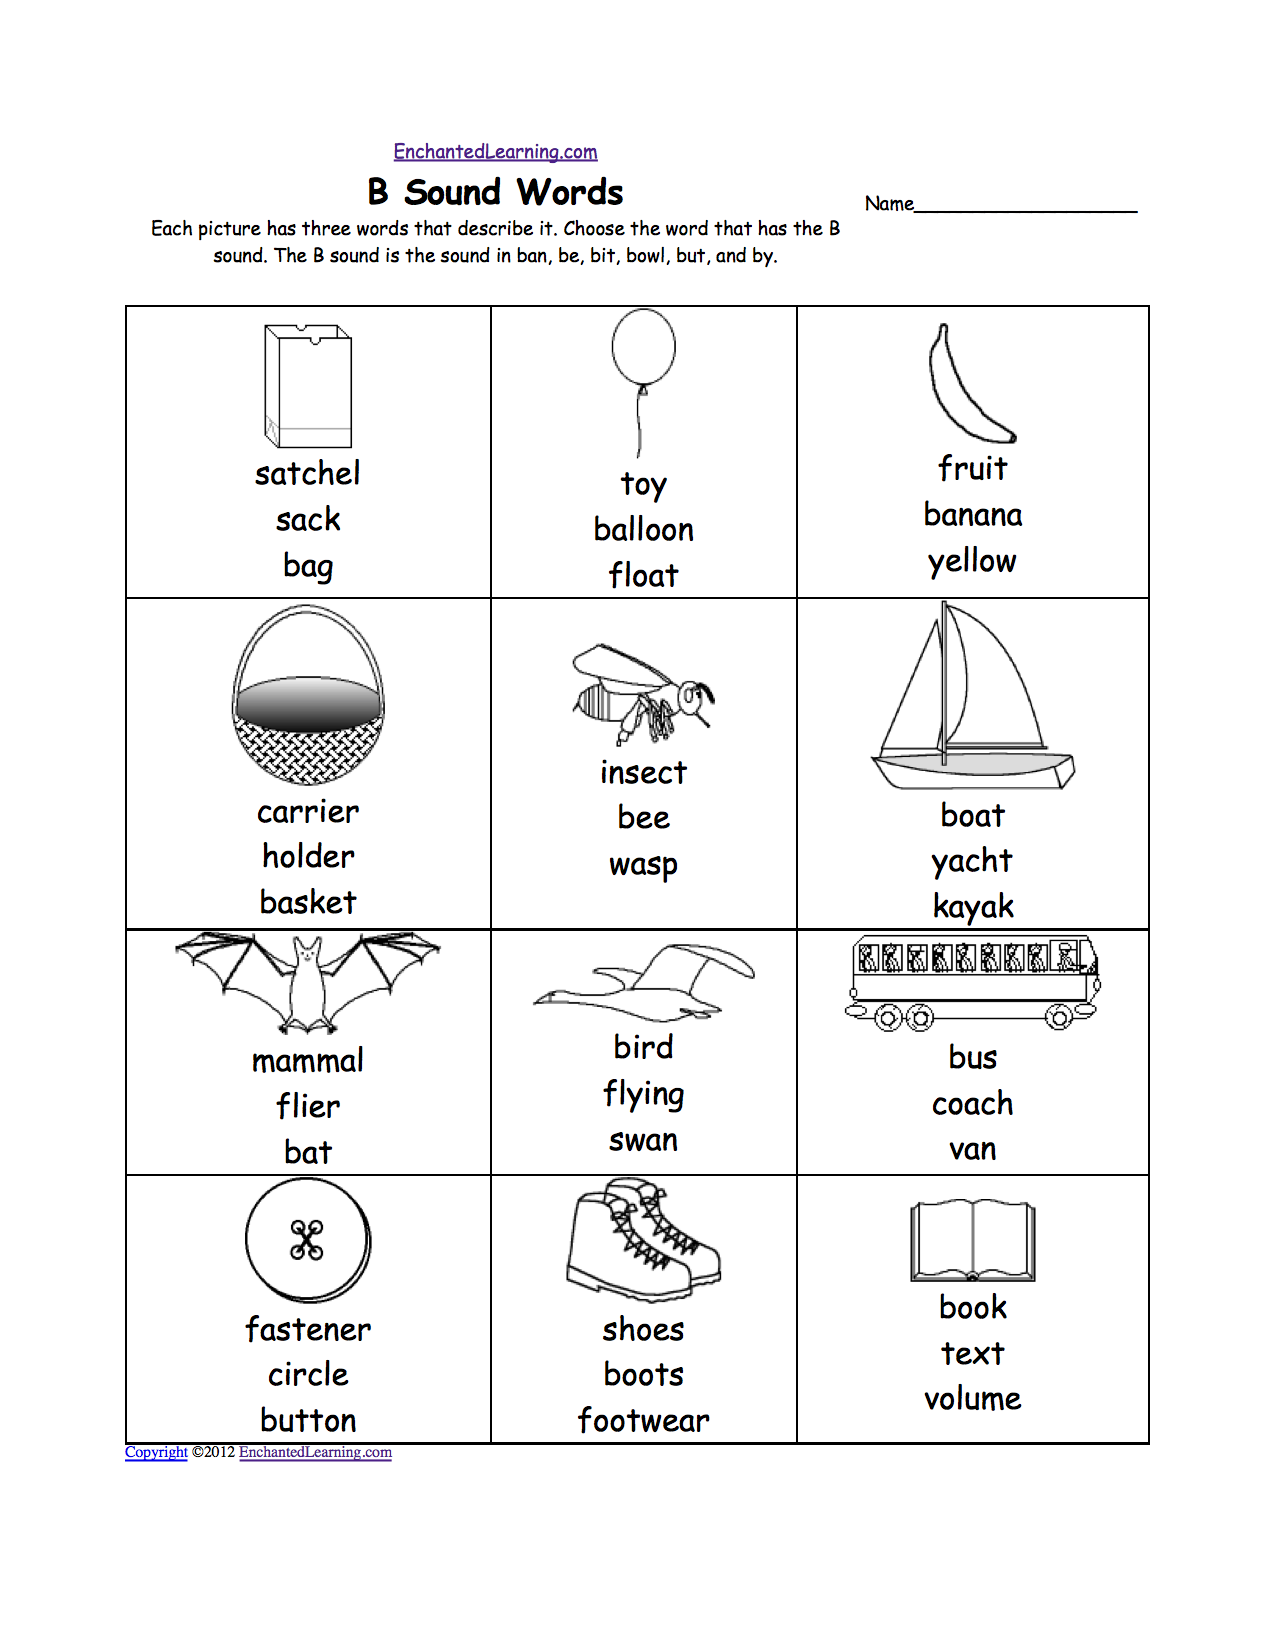 Aldiablosus  Personable Phonics Worksheets Multiple Choice Worksheets To Print  With Extraordinary Quotbquot Sound Phonics Worksheet Multiple Choice Each Picture Has Three Words That Describe It Choose The Word That Has A Quotbquot Sound The Quotbquot Sound Is The Sound  With Lovely Halloween Counting Worksheet Also Plant Science Worksheets In Addition Viking Worksheets Ks And Science Worksheet Grade  As Well As Provinces Of Canada Worksheet Additionally Spelling Activities Worksheets From Enchantedlearningcom With Aldiablosus  Extraordinary Phonics Worksheets Multiple Choice Worksheets To Print  With Lovely Quotbquot Sound Phonics Worksheet Multiple Choice Each Picture Has Three Words That Describe It Choose The Word That Has A Quotbquot Sound The Quotbquot Sound Is The Sound  And Personable Halloween Counting Worksheet Also Plant Science Worksheets In Addition Viking Worksheets Ks From Enchantedlearningcom